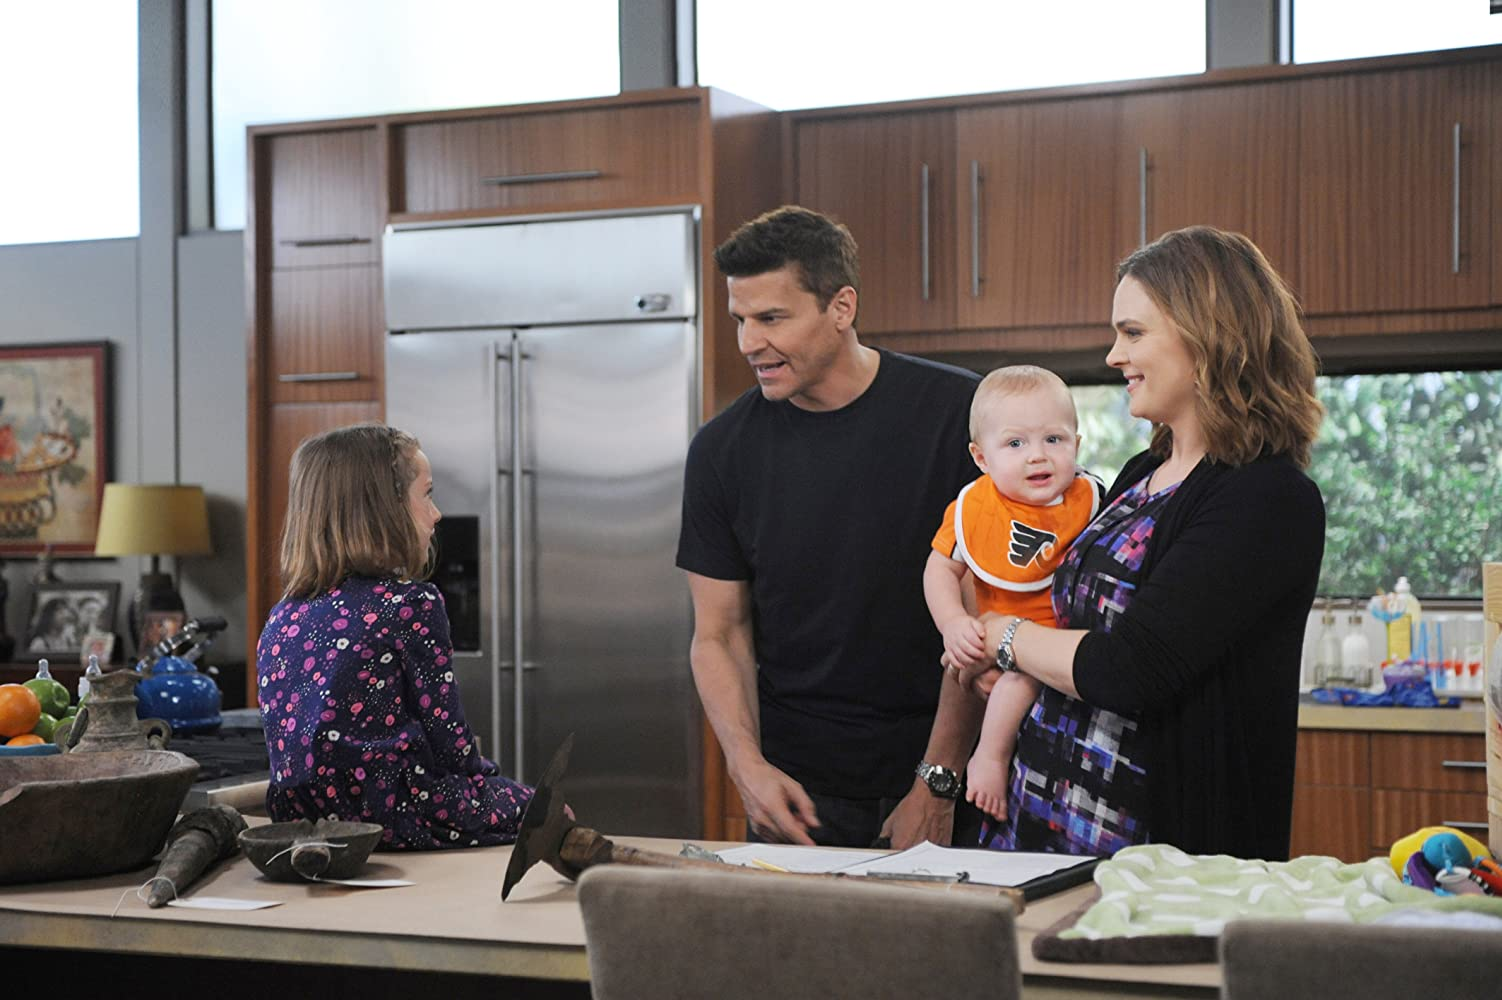 David Boreanaz, Emily Deschanel, and Sunnie Pelant in Bones (2005)